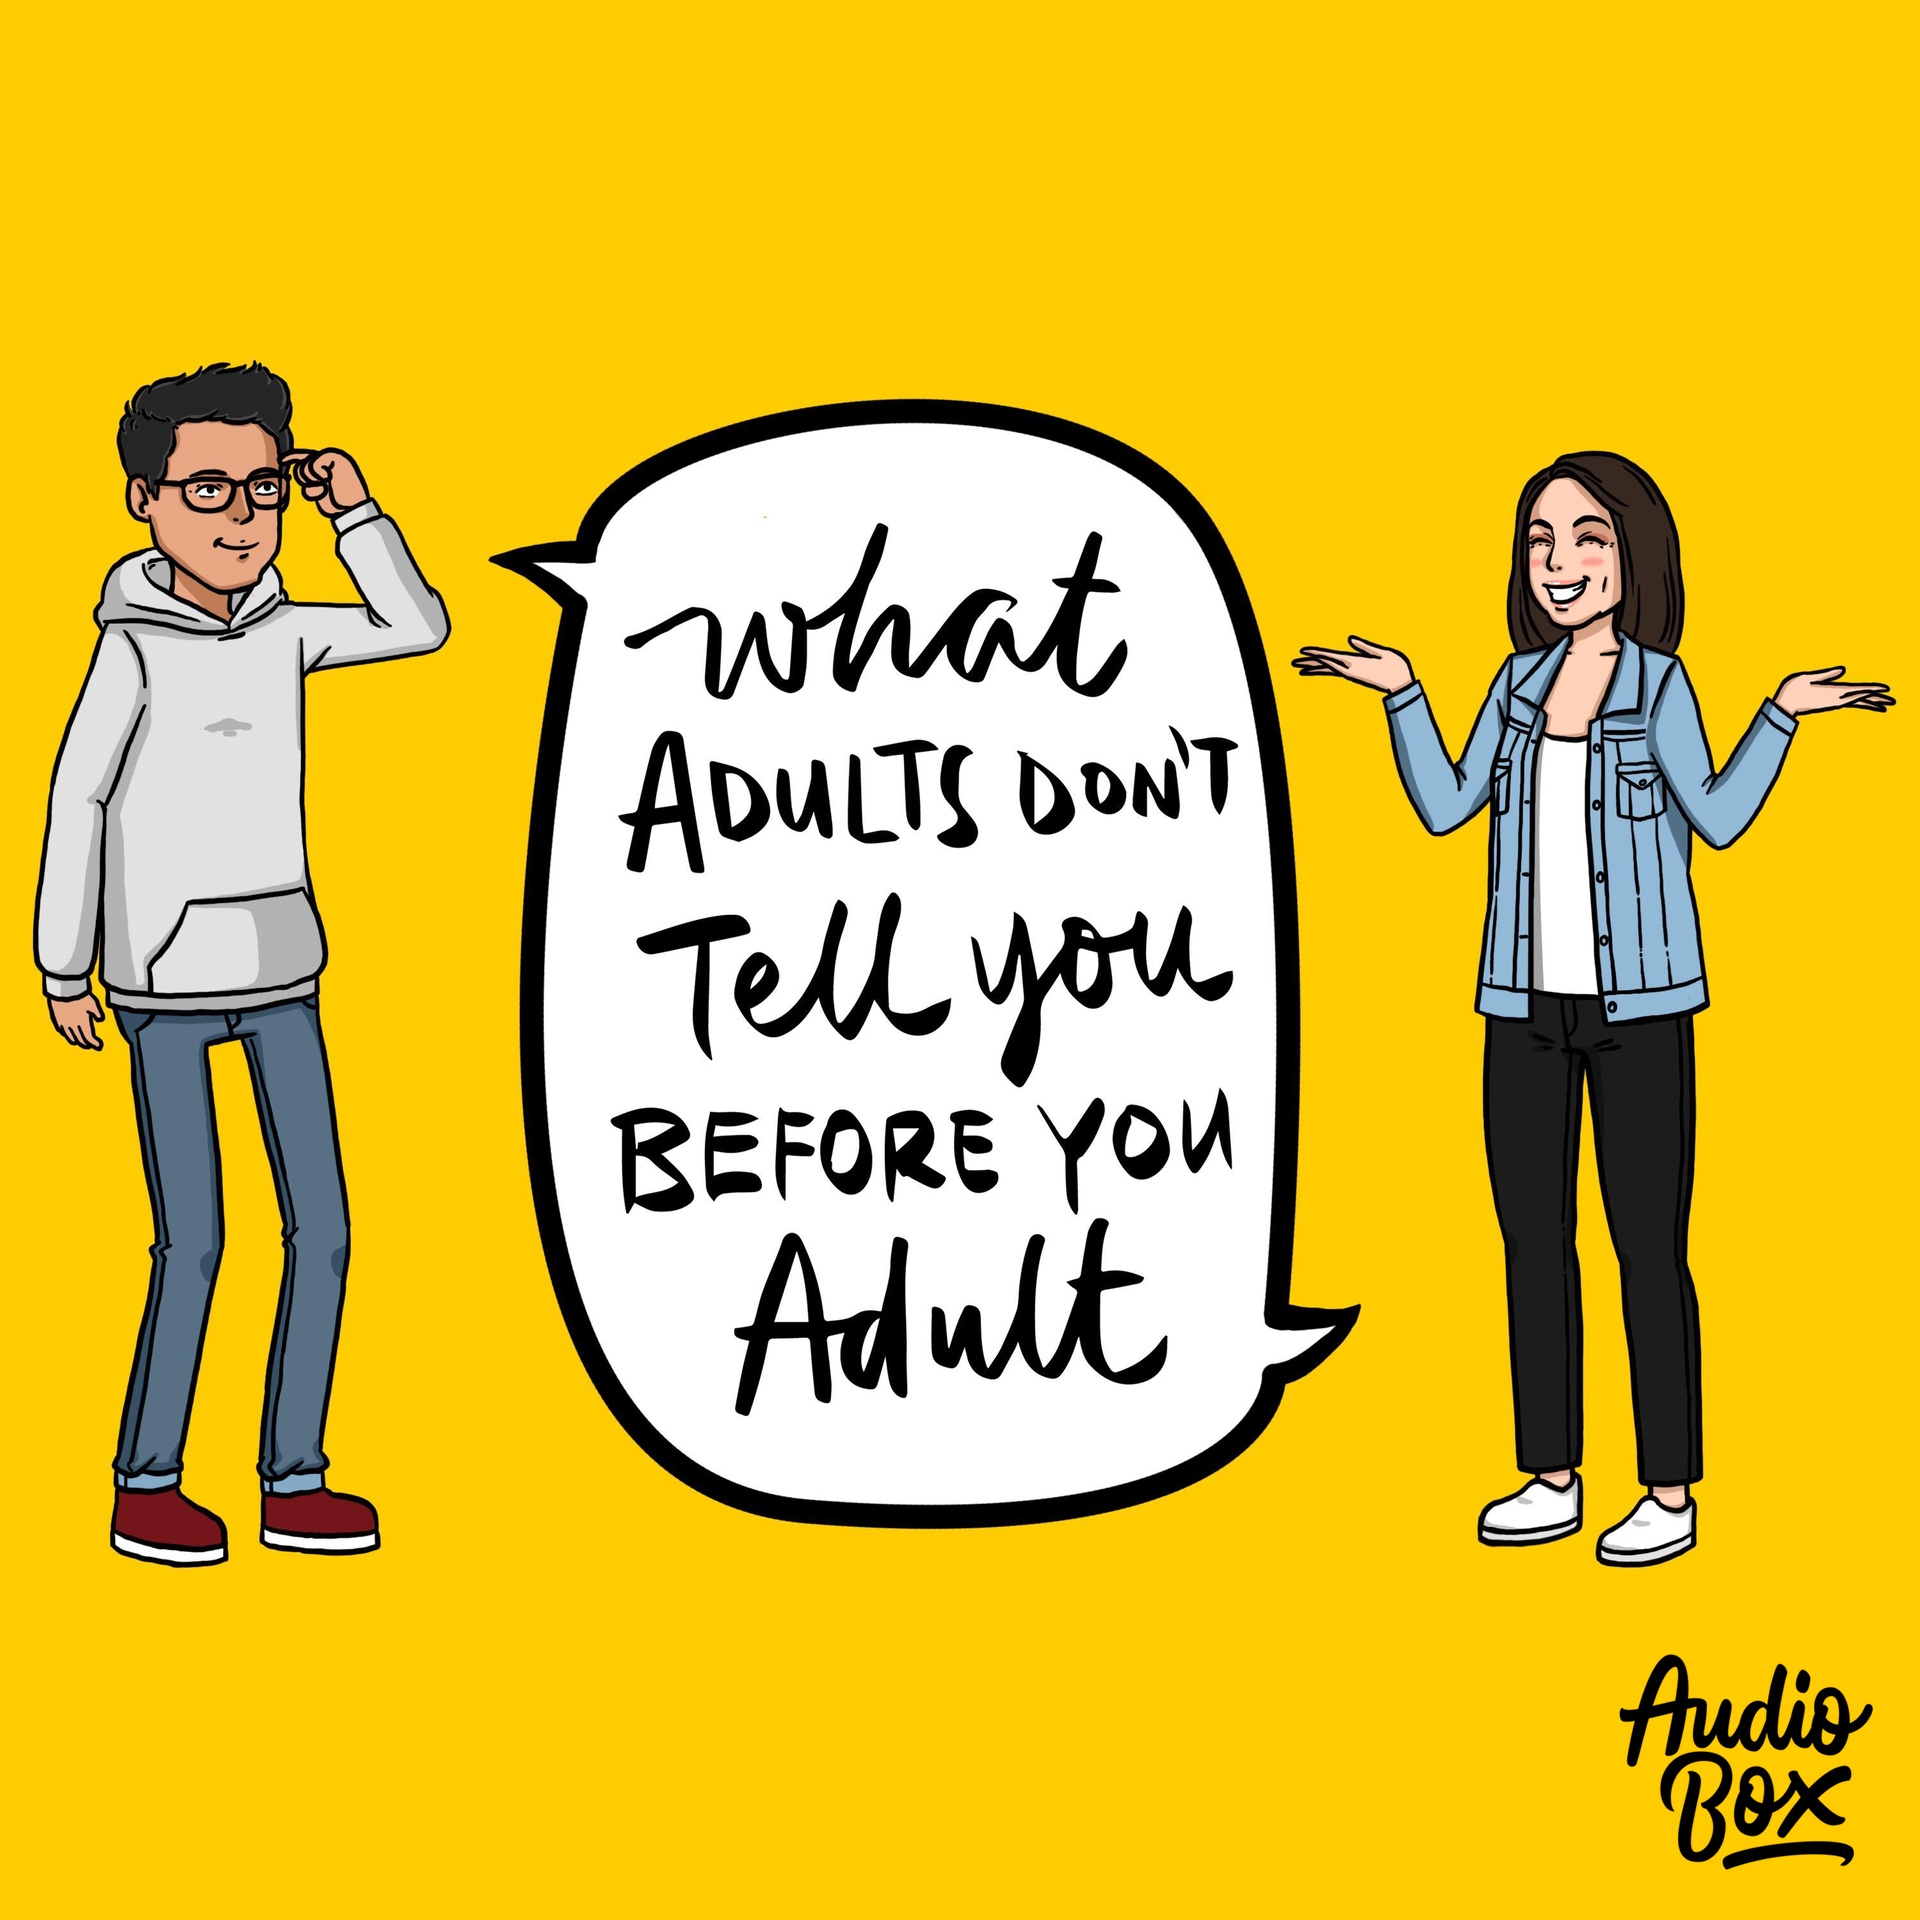 What Adults Don't Tell You Before You Adult podcast logo